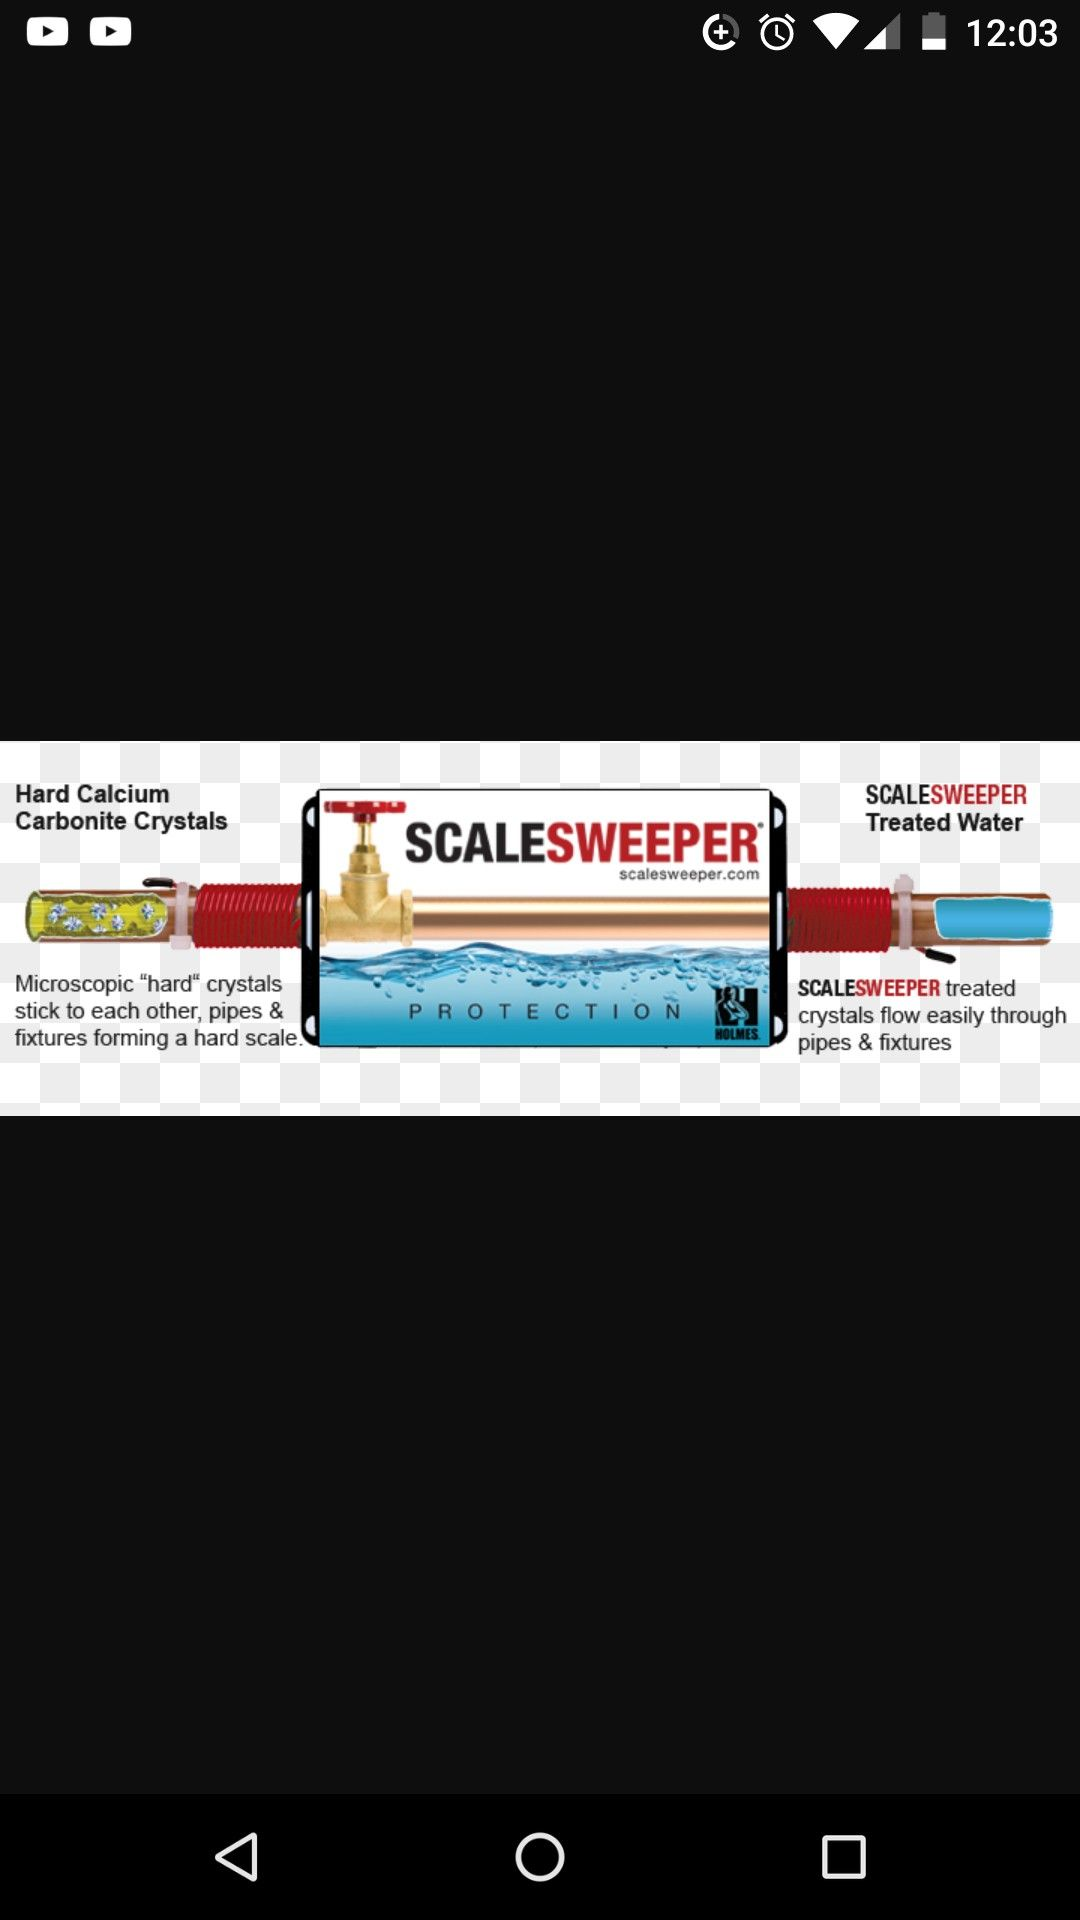 Home Water Conditioner Scalesweeper Electromagnetic Home Water Conditioner Home Ideas